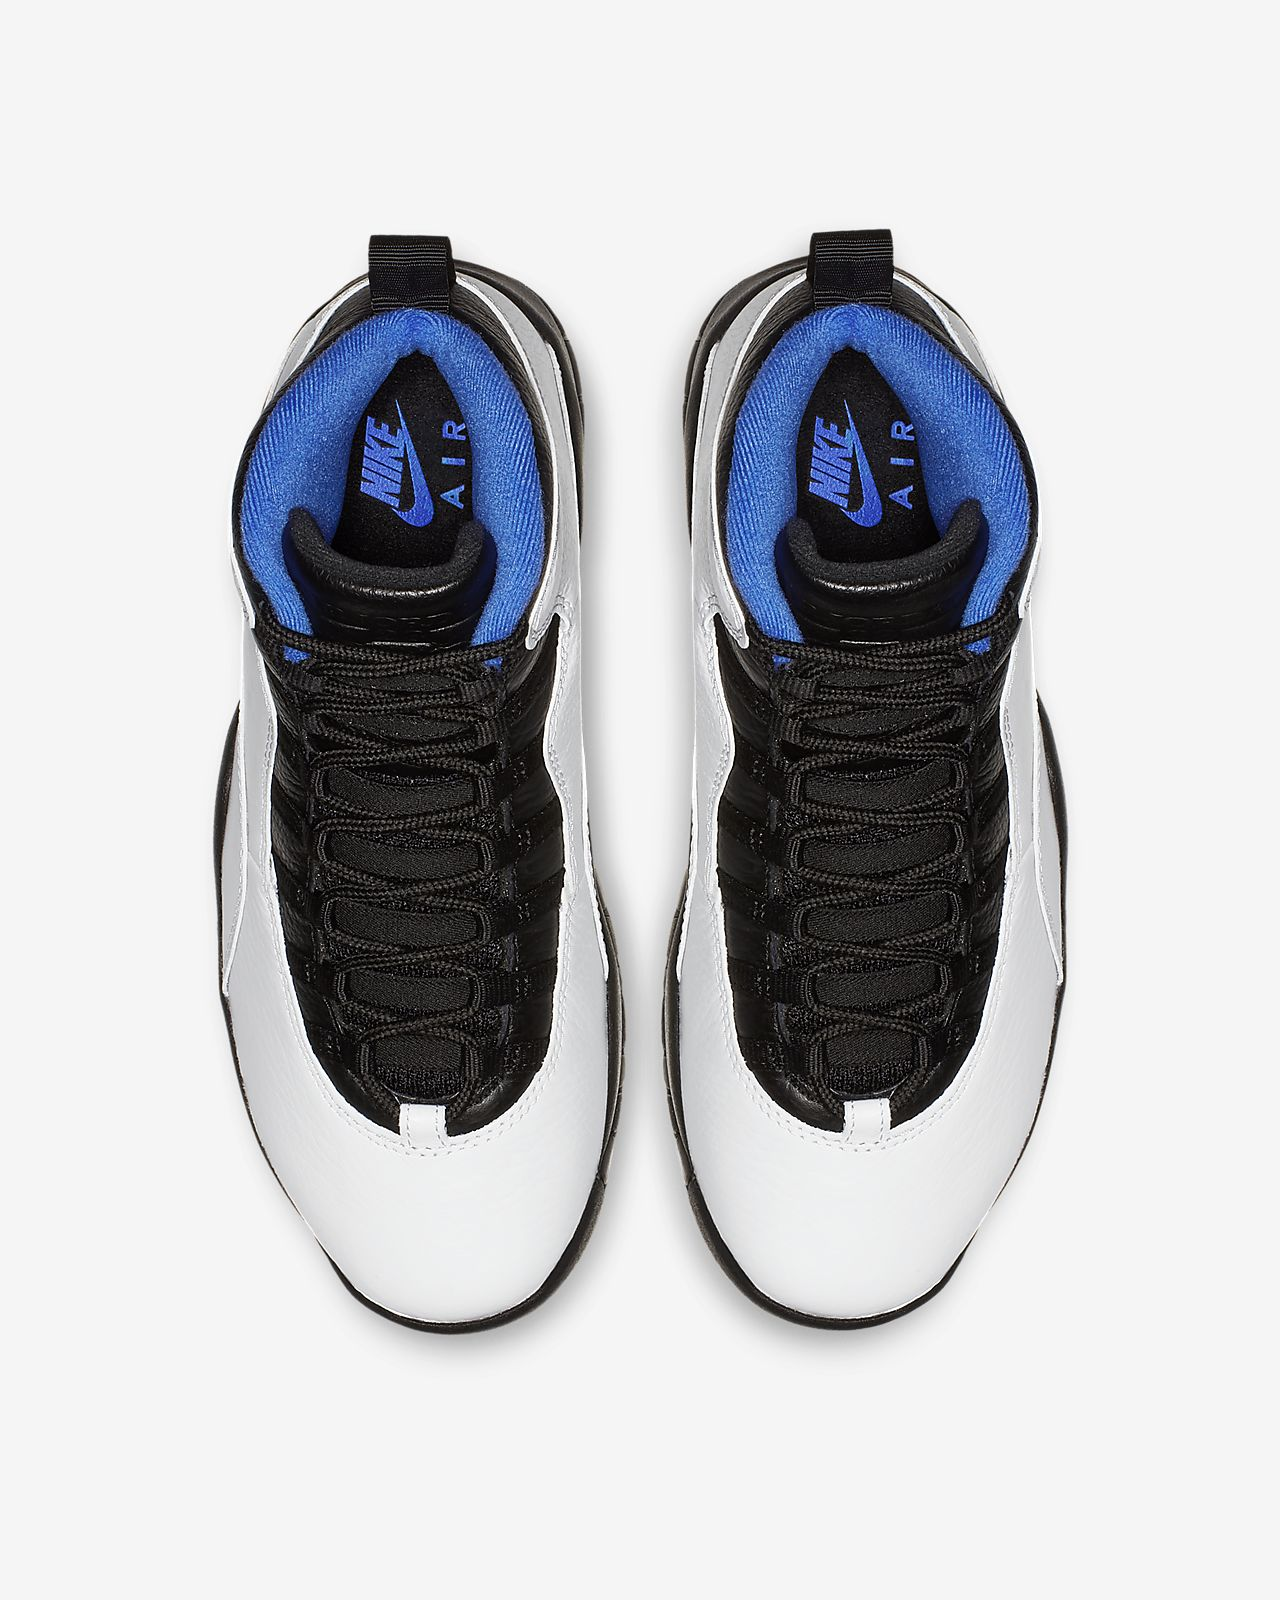 5f13fecac796 Air Jordan 10 Retro Men s Shoe. Nike.com